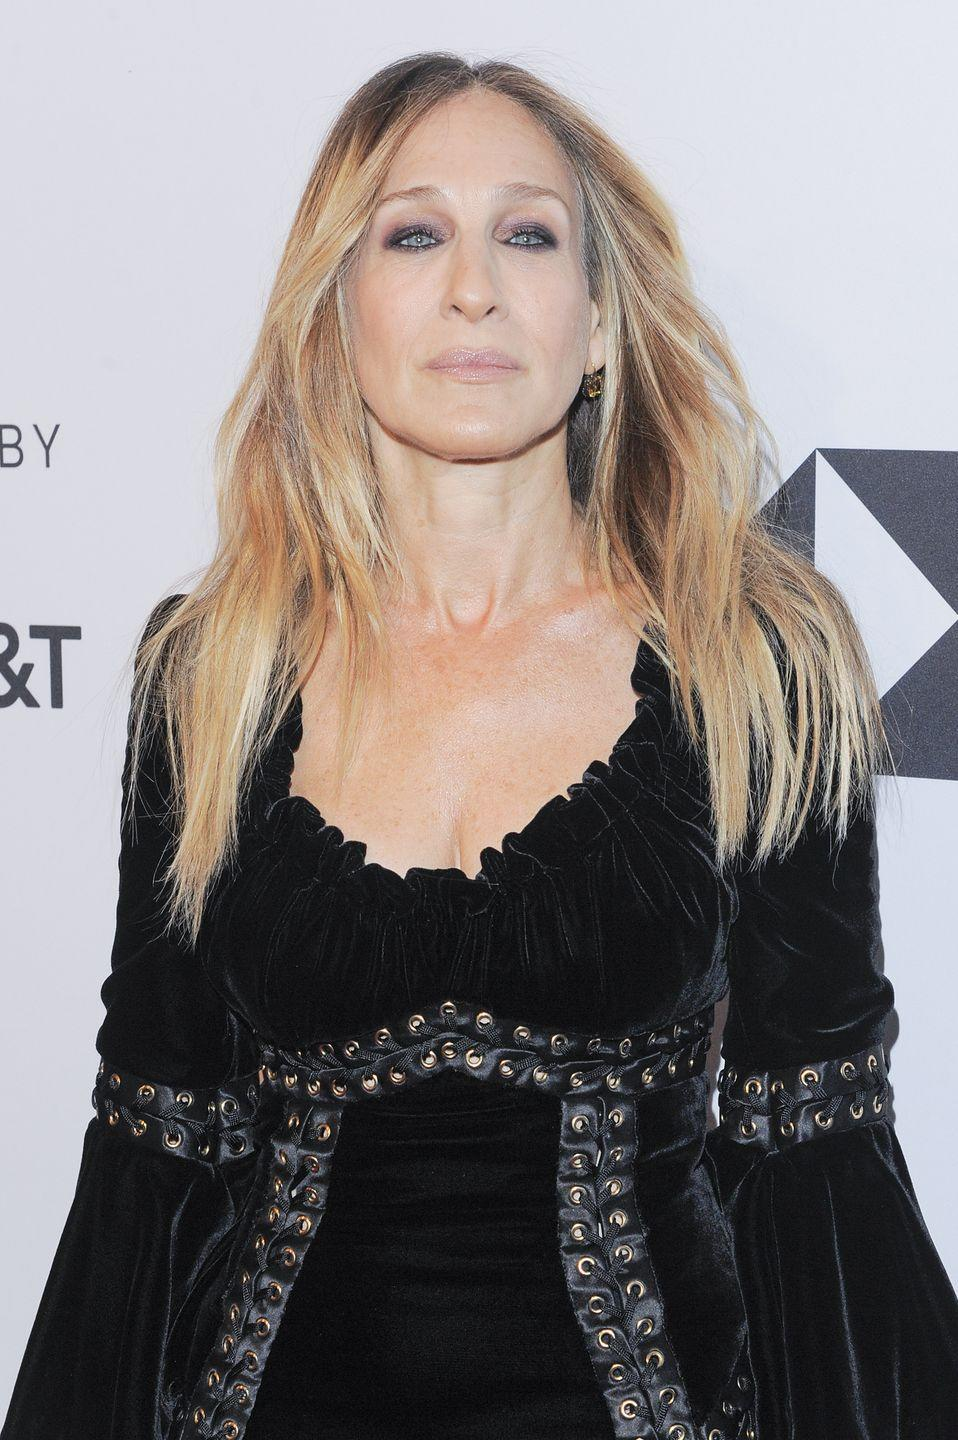 """<p>Parker commented again on the situation and her relationship with Cattrall at the 2018 Tribeca Film Festival. """"I'd just like to remind everybody that there is no catfight,"""" she told <a href=""""http://www.vulture.com/2018/04/sarah-jessica-parker-on-sex-and-the-city-friendships.html"""" rel=""""nofollow noopener"""" target=""""_blank"""" data-ylk=""""slk:Vulture"""" class=""""link rapid-noclick-resp""""><em>Vulture</em></a> at the premiere of <em>Blue Night</em>. """"I have never uttered an unkind, unsupportive, unfriendly word, so I would love to redefine it. I also want to remind everybody that there were four women on the set and I spent equal time with all of them, so this was not a set with two women who didn't get along. I've always held Kim's work in high regard and always appreciative of her contributions. If she chooses not to do the third movie, there's not a lot I can do to change her mind and we must respect it. That's the only thing I've ever said about it, you know?""""</p>"""